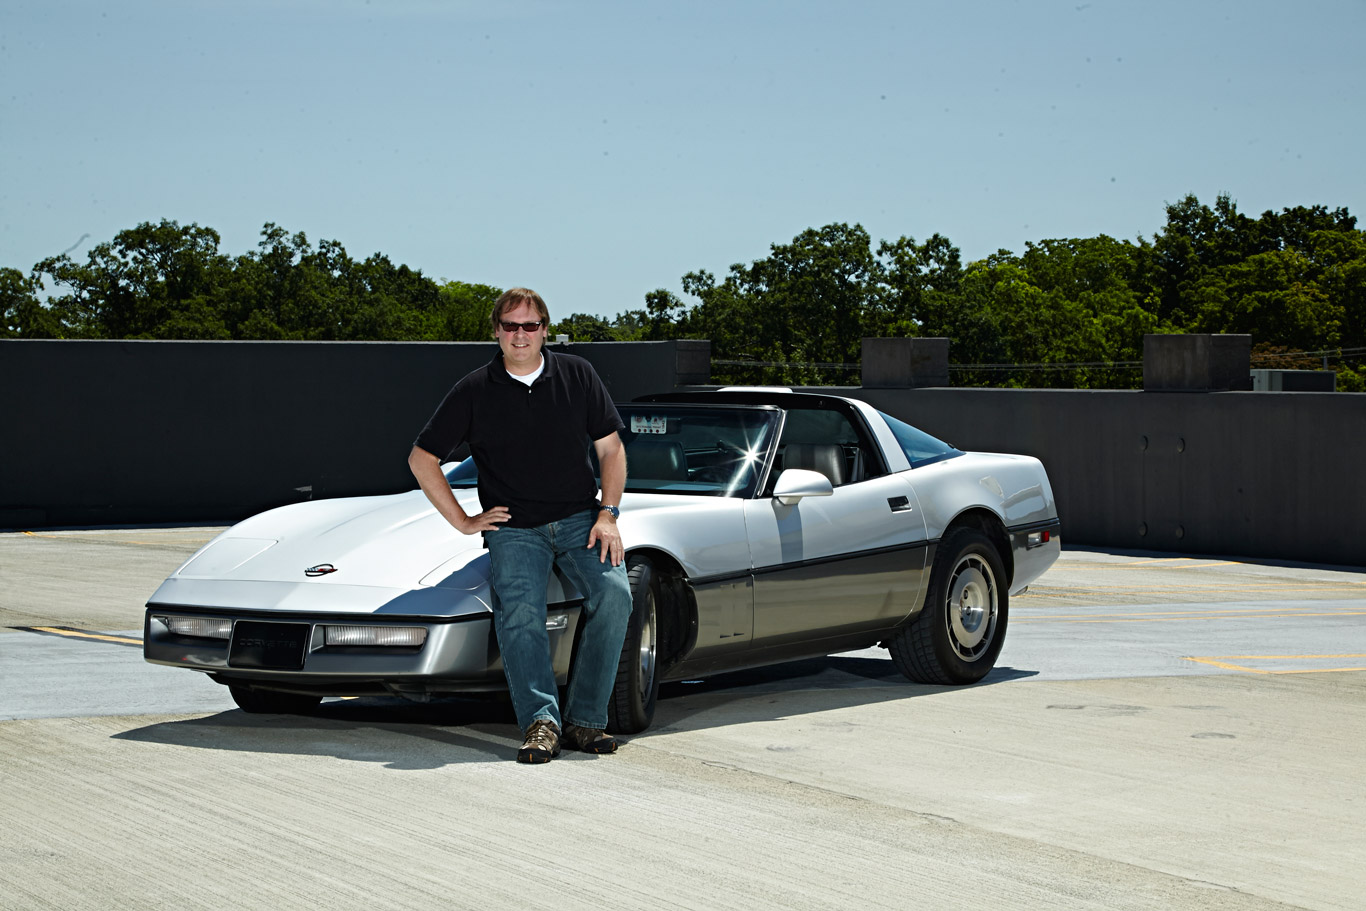 Our Cars: Brian Sarlund's 1986 Chevrolet Corvette thumbnail